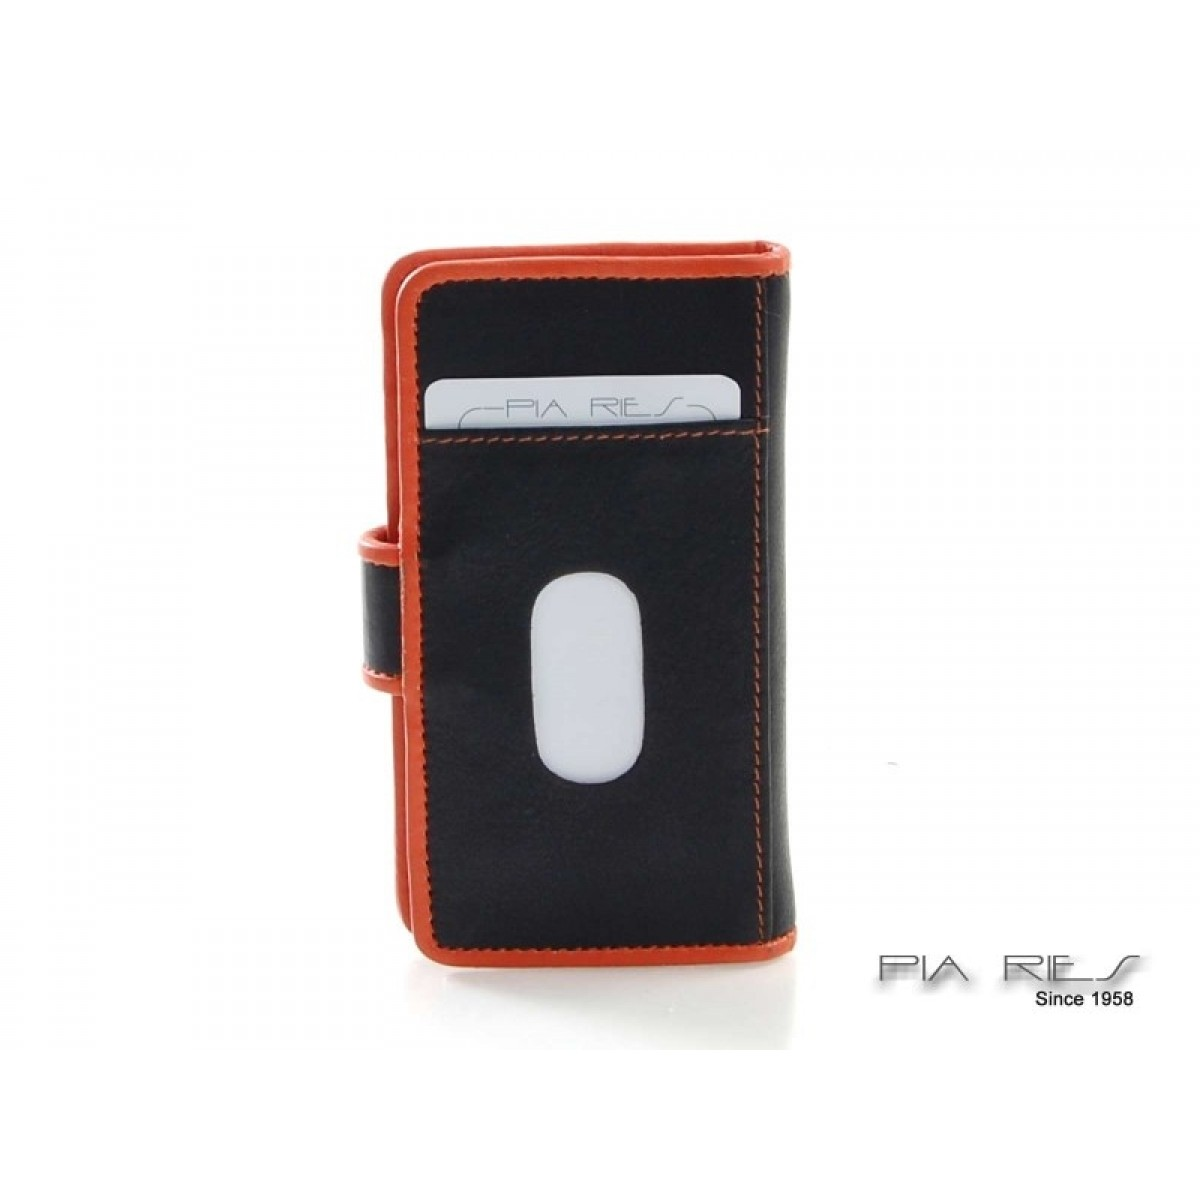 Etui I-phone 5 orange-31